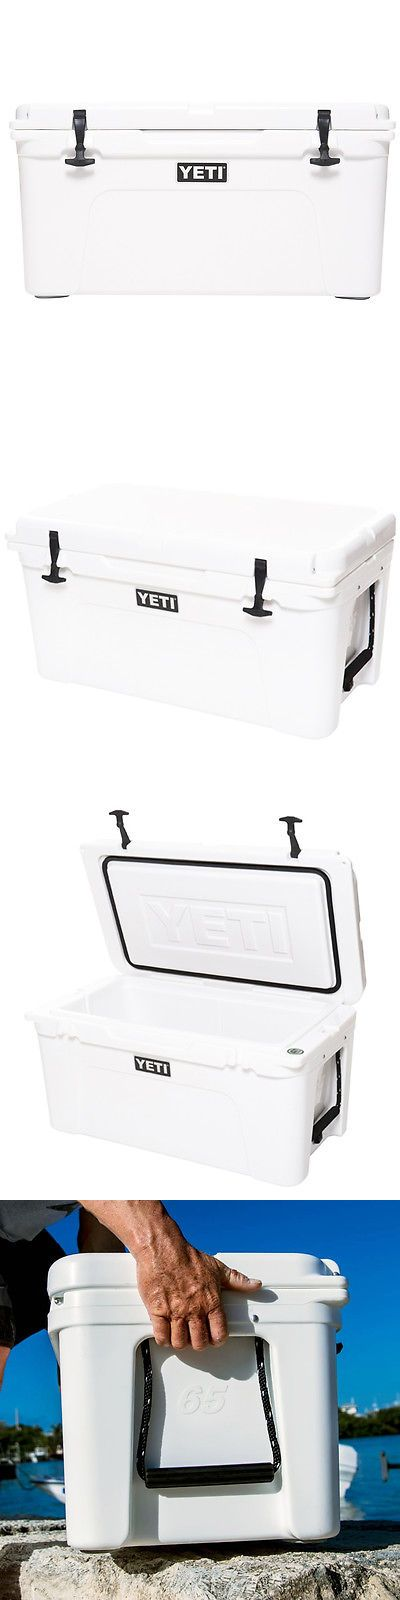 Camping Ice Boxes and Coolers 181382: Yeti 10065020000 65-Quart White Heavy Duty Tundra 65 Ice Chest Cooler - Yt65w -> BUY IT NOW ONLY: $399.99 on eBay!